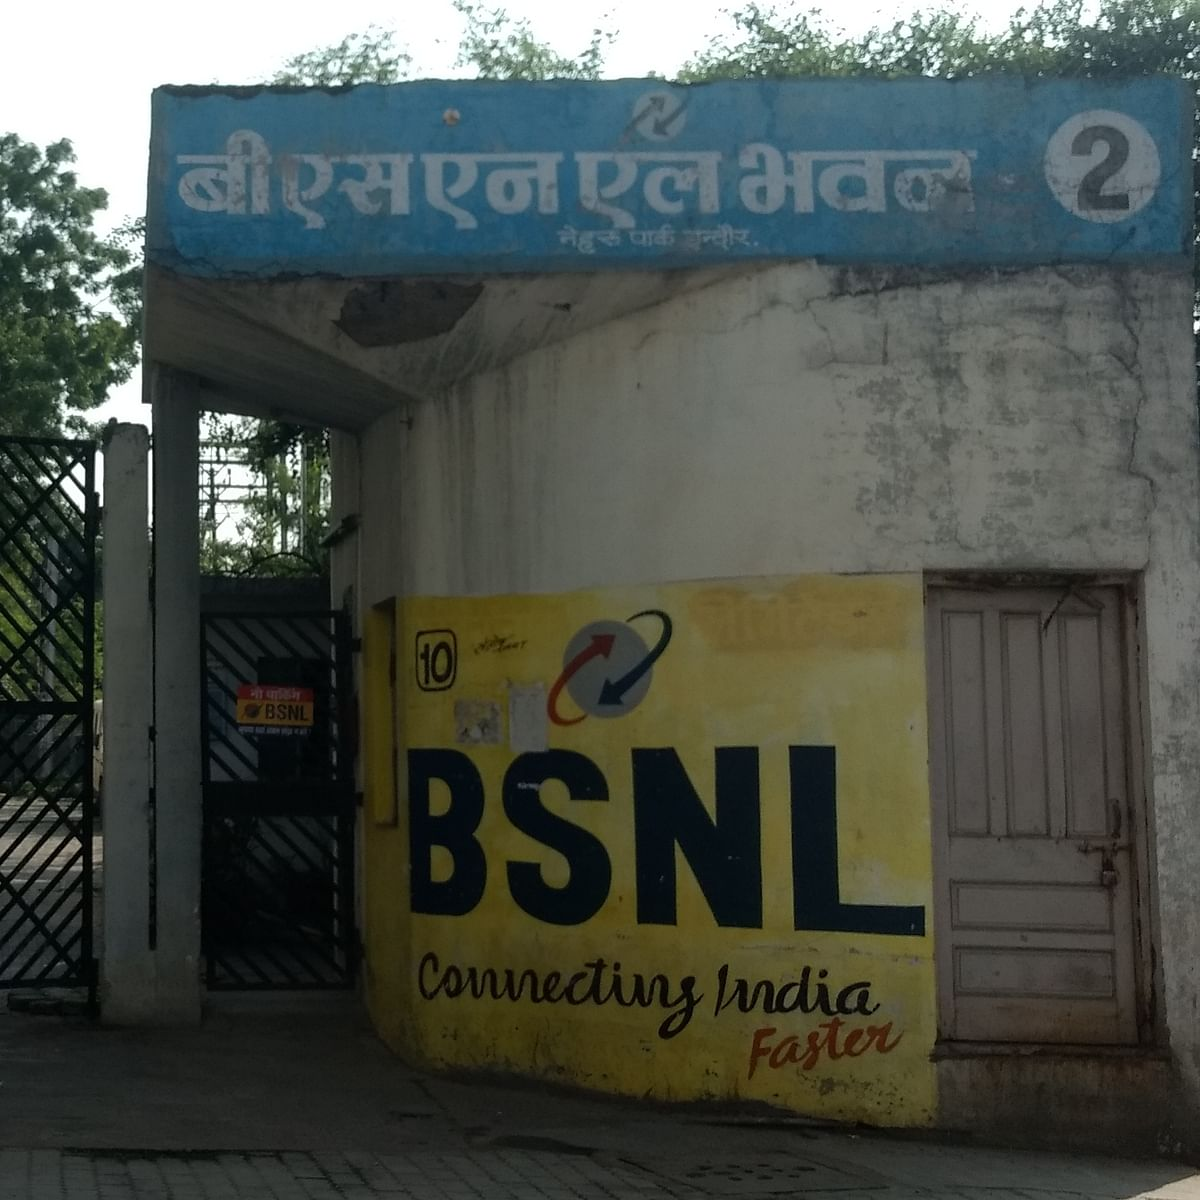 60 % BSNL staff in Indore district get 'disconnected'